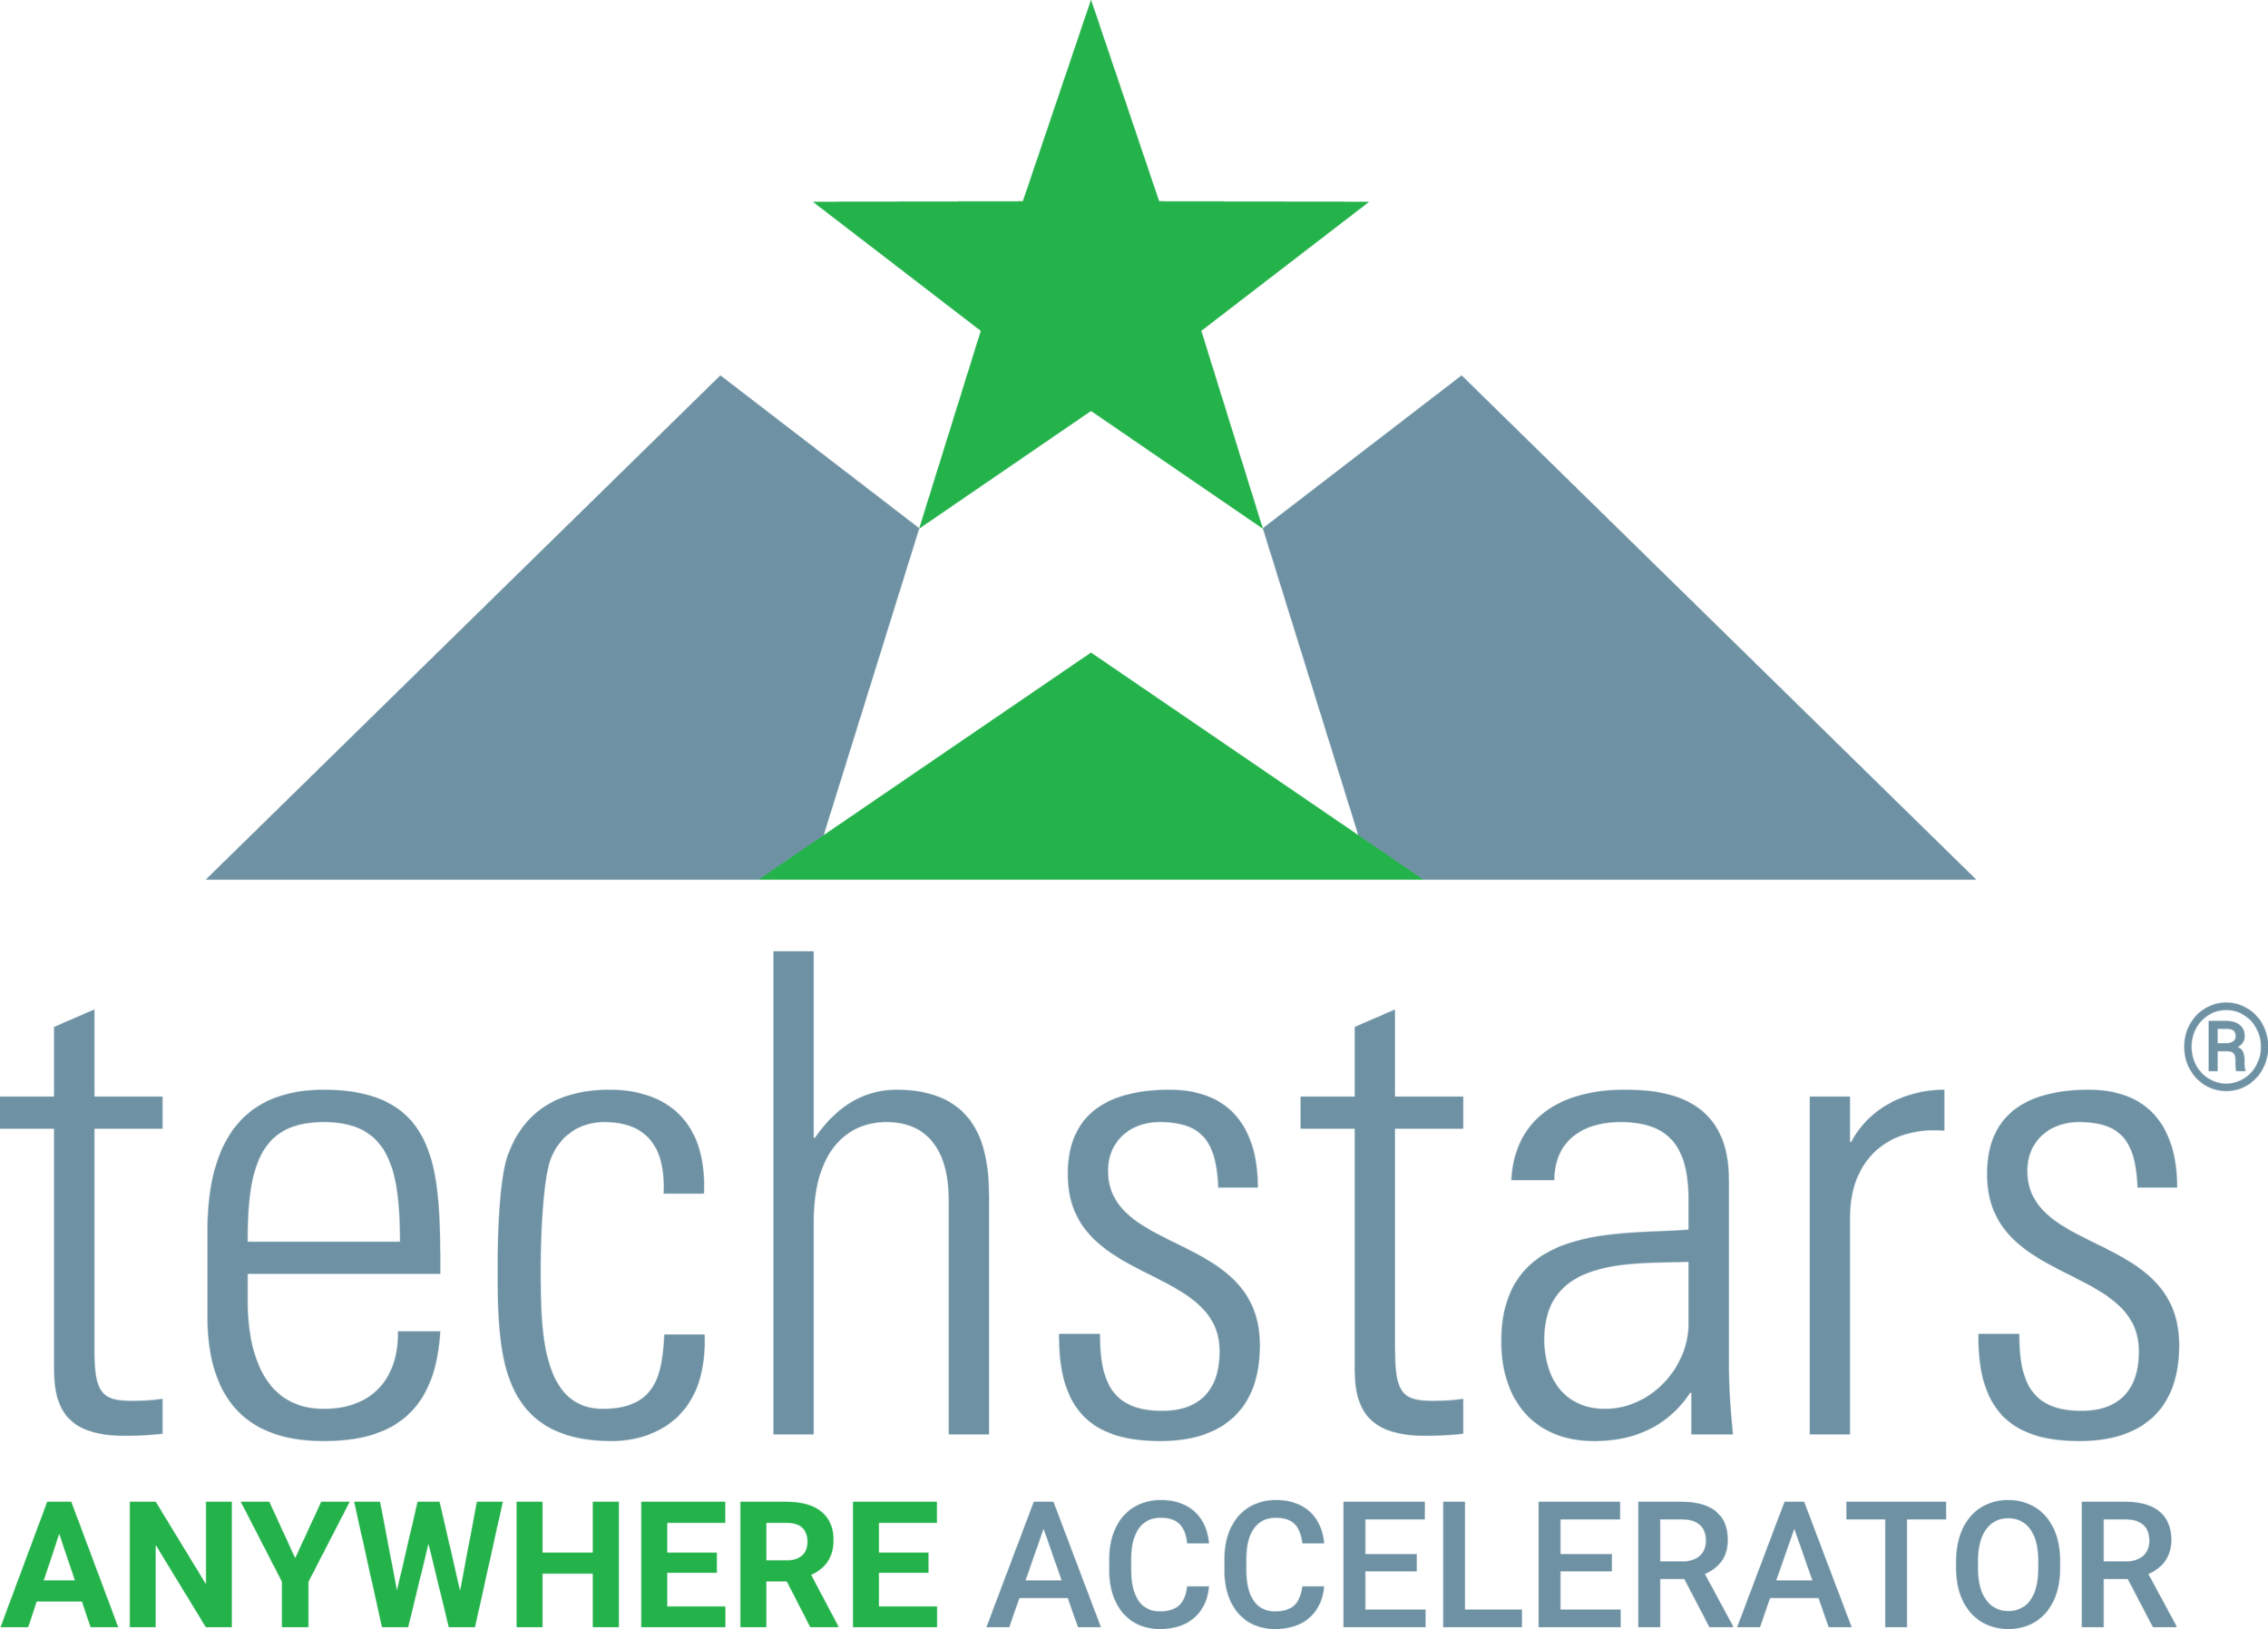 Techstars-Anywhere-Accelerator-Color.png